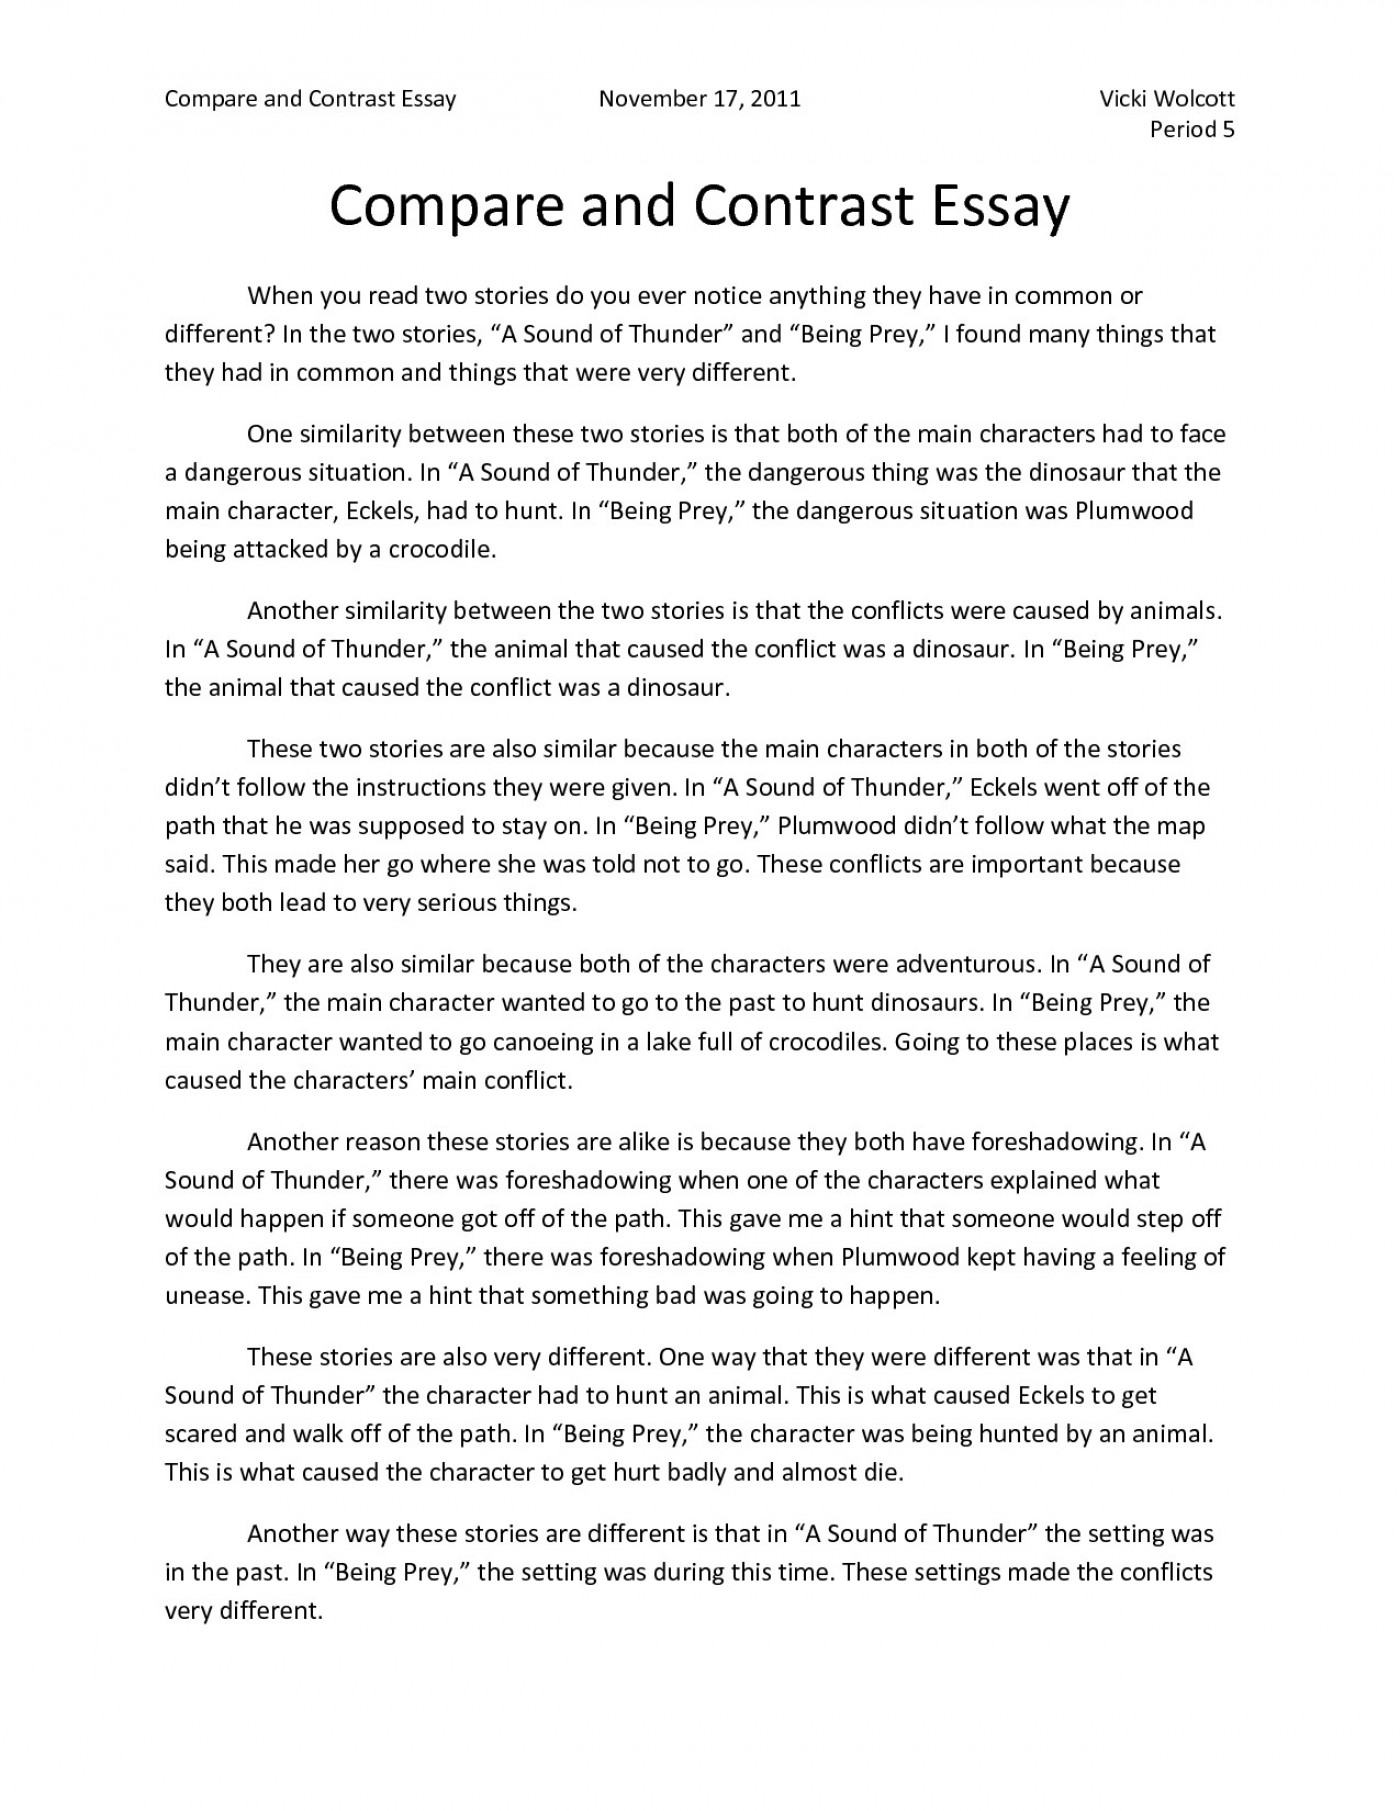 006 Comparing And Contrasting Essay Example Satire Examples Of Comparison Contrast Essays Com How To Write Outstanding A Compare Outline Powerpoint Introduction 1400